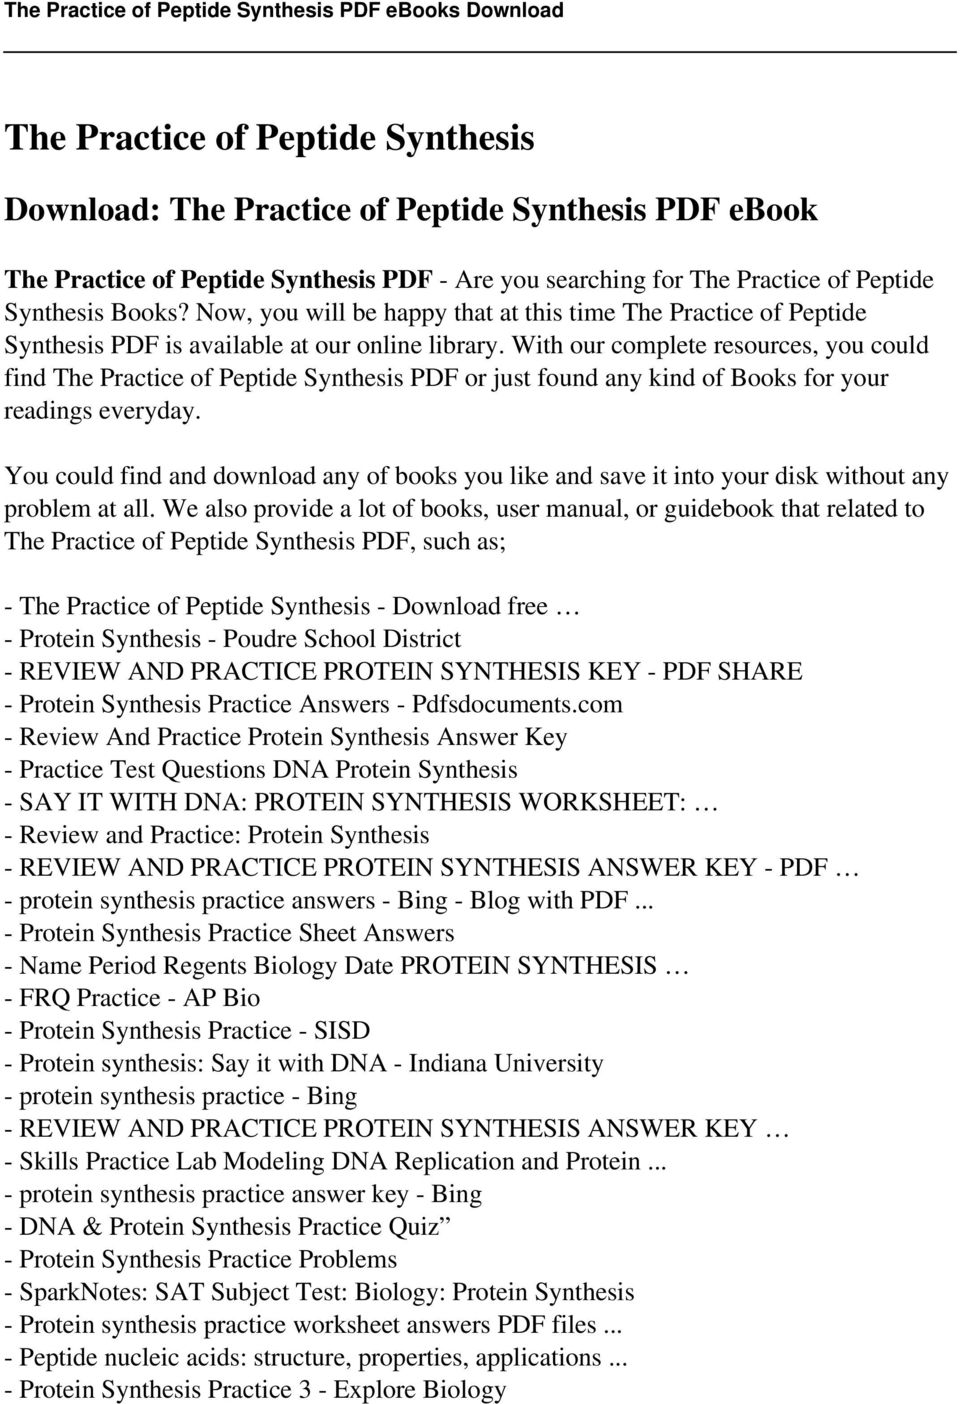 worksheet Protein Synthesis Worksheet Lesson Plans Inc 2007 the practice of peptide synthesis pdf with our complete resources you could find or just